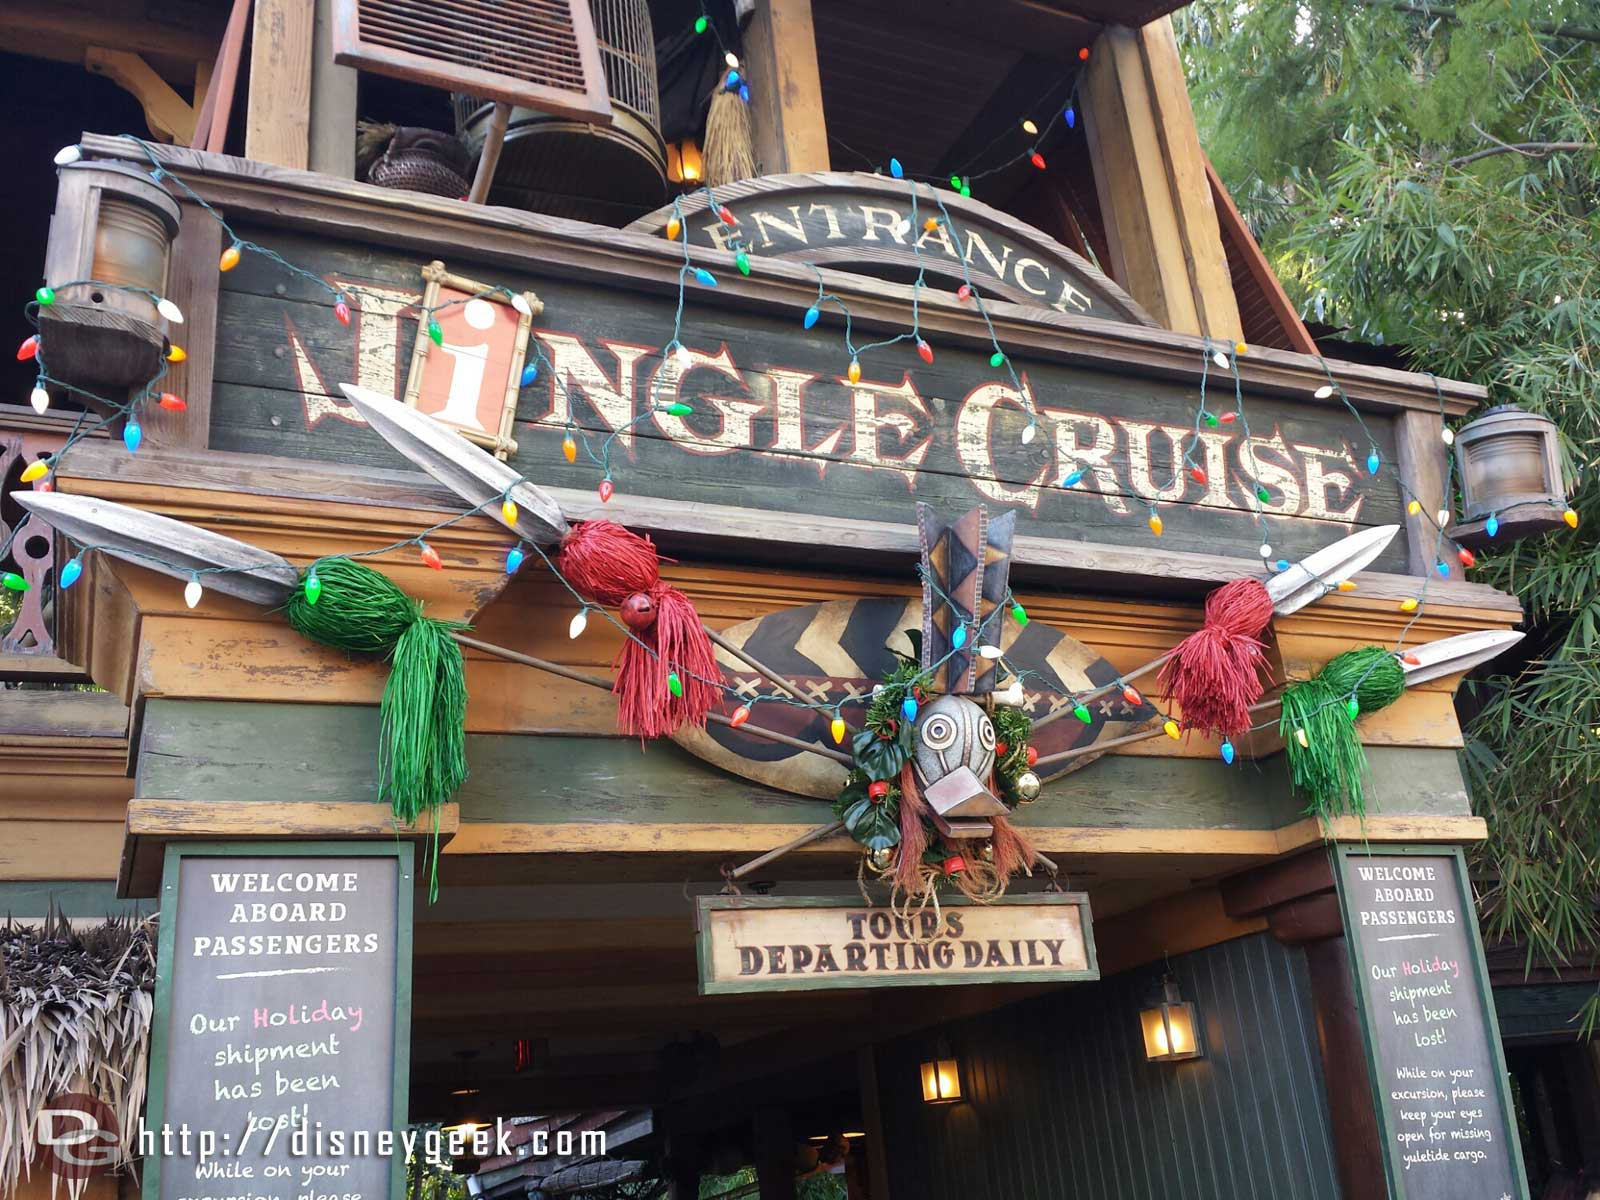 The Jingle Cruise had a posted 30 min wait, turned out to be 15 min only